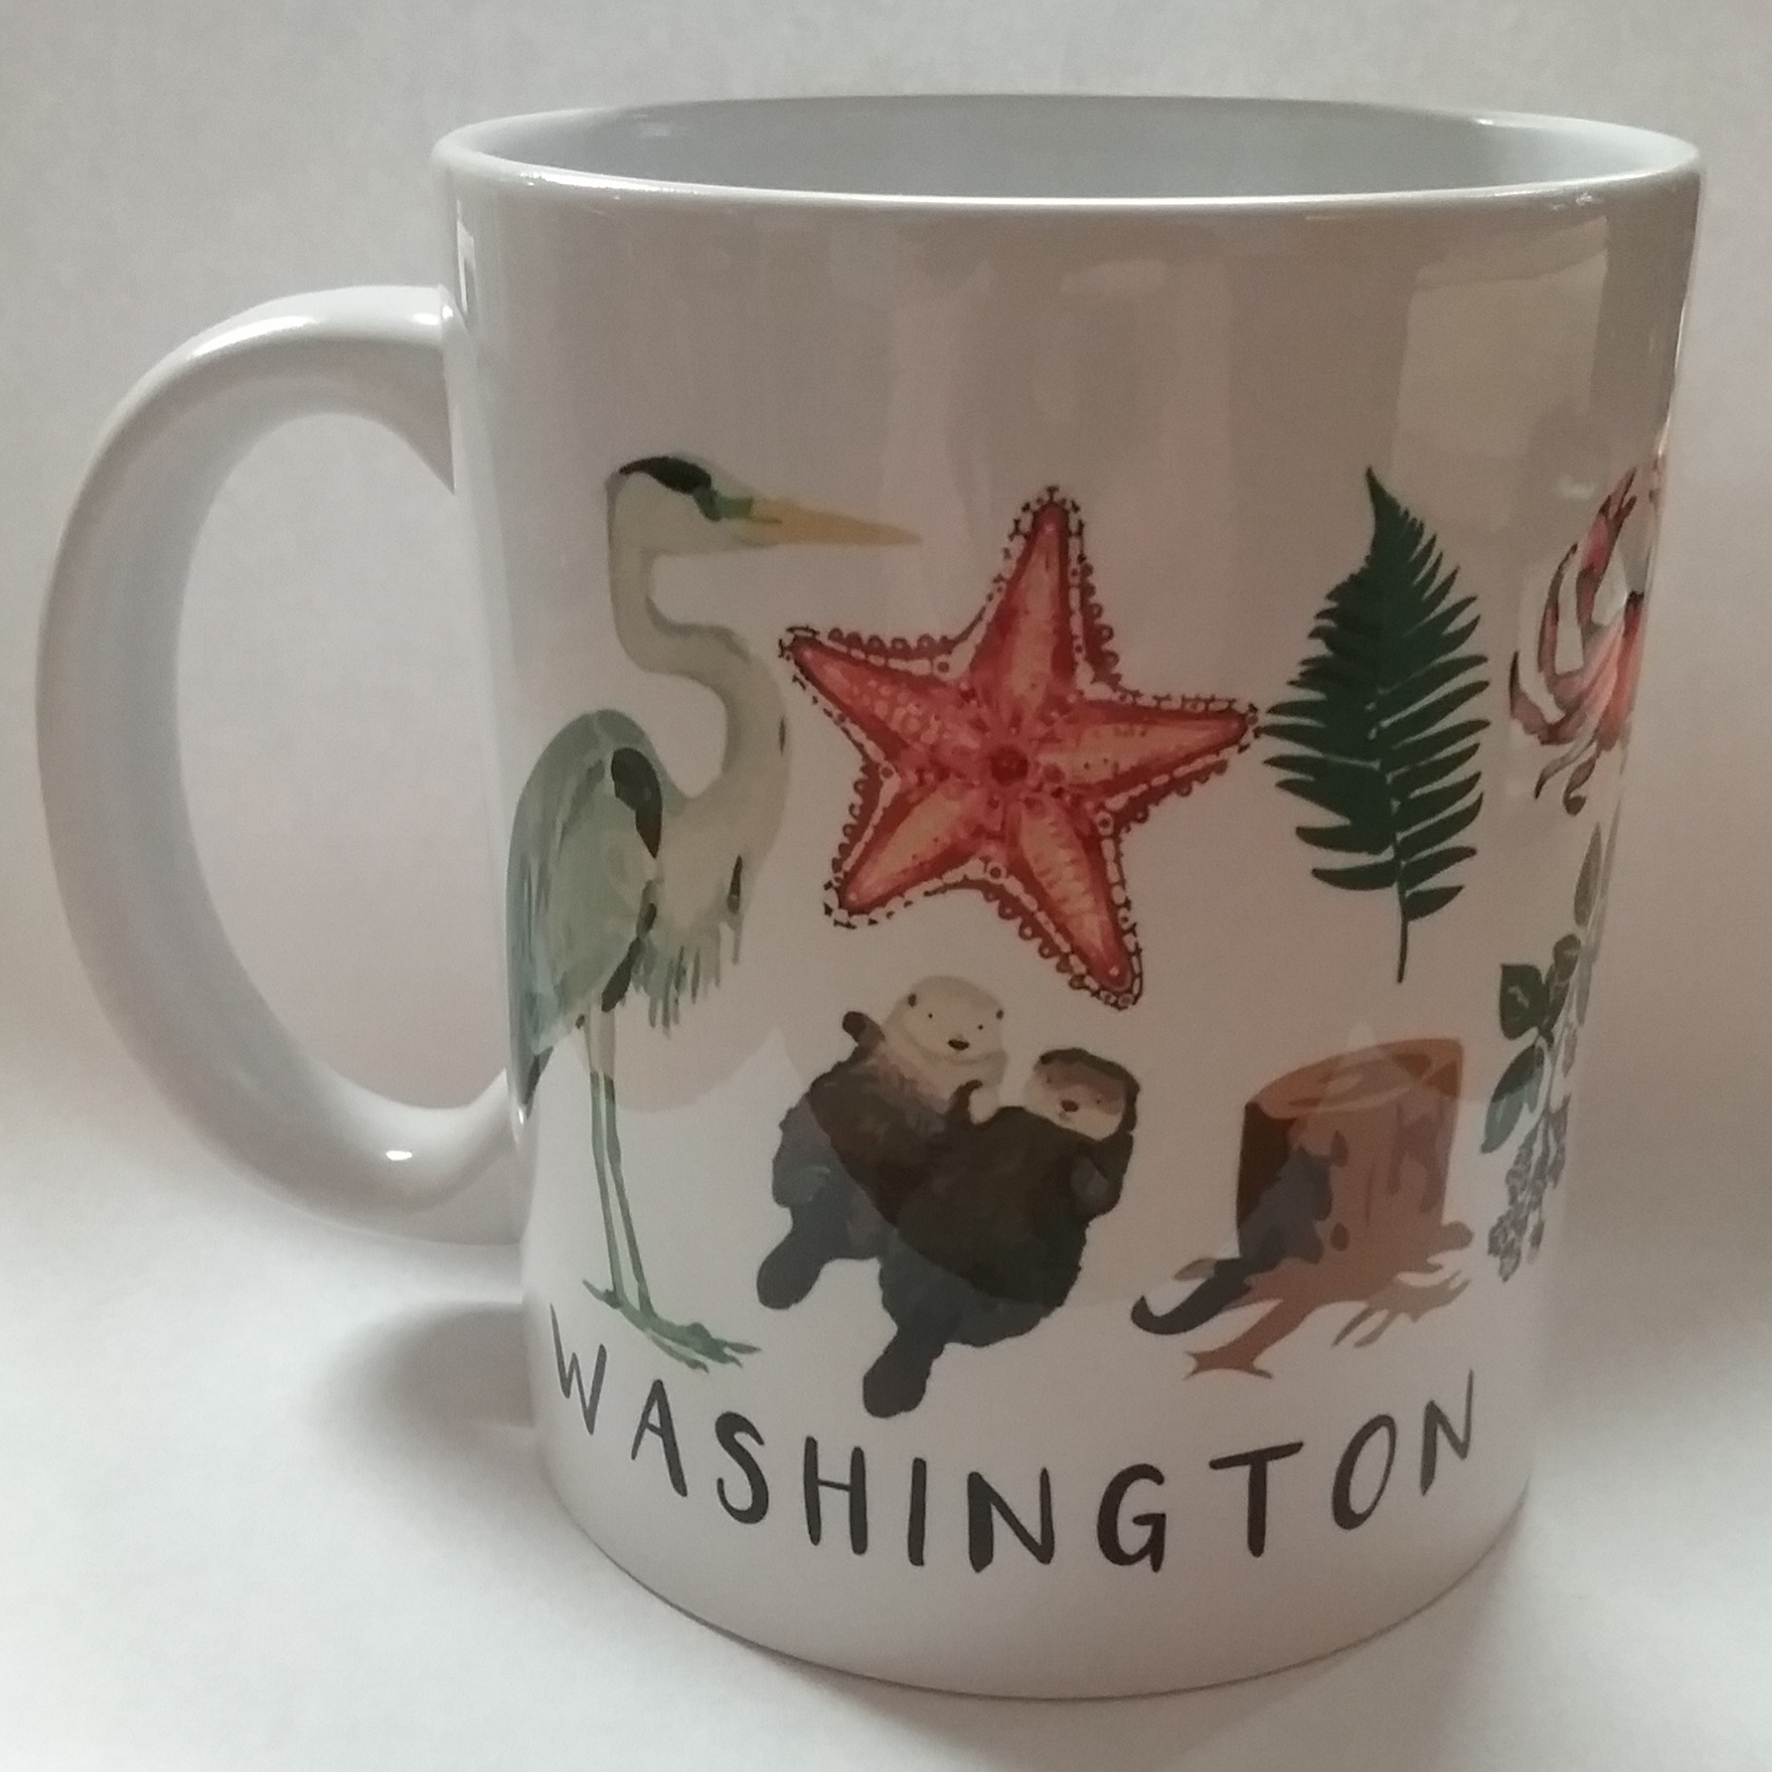 Washington Objects Mug